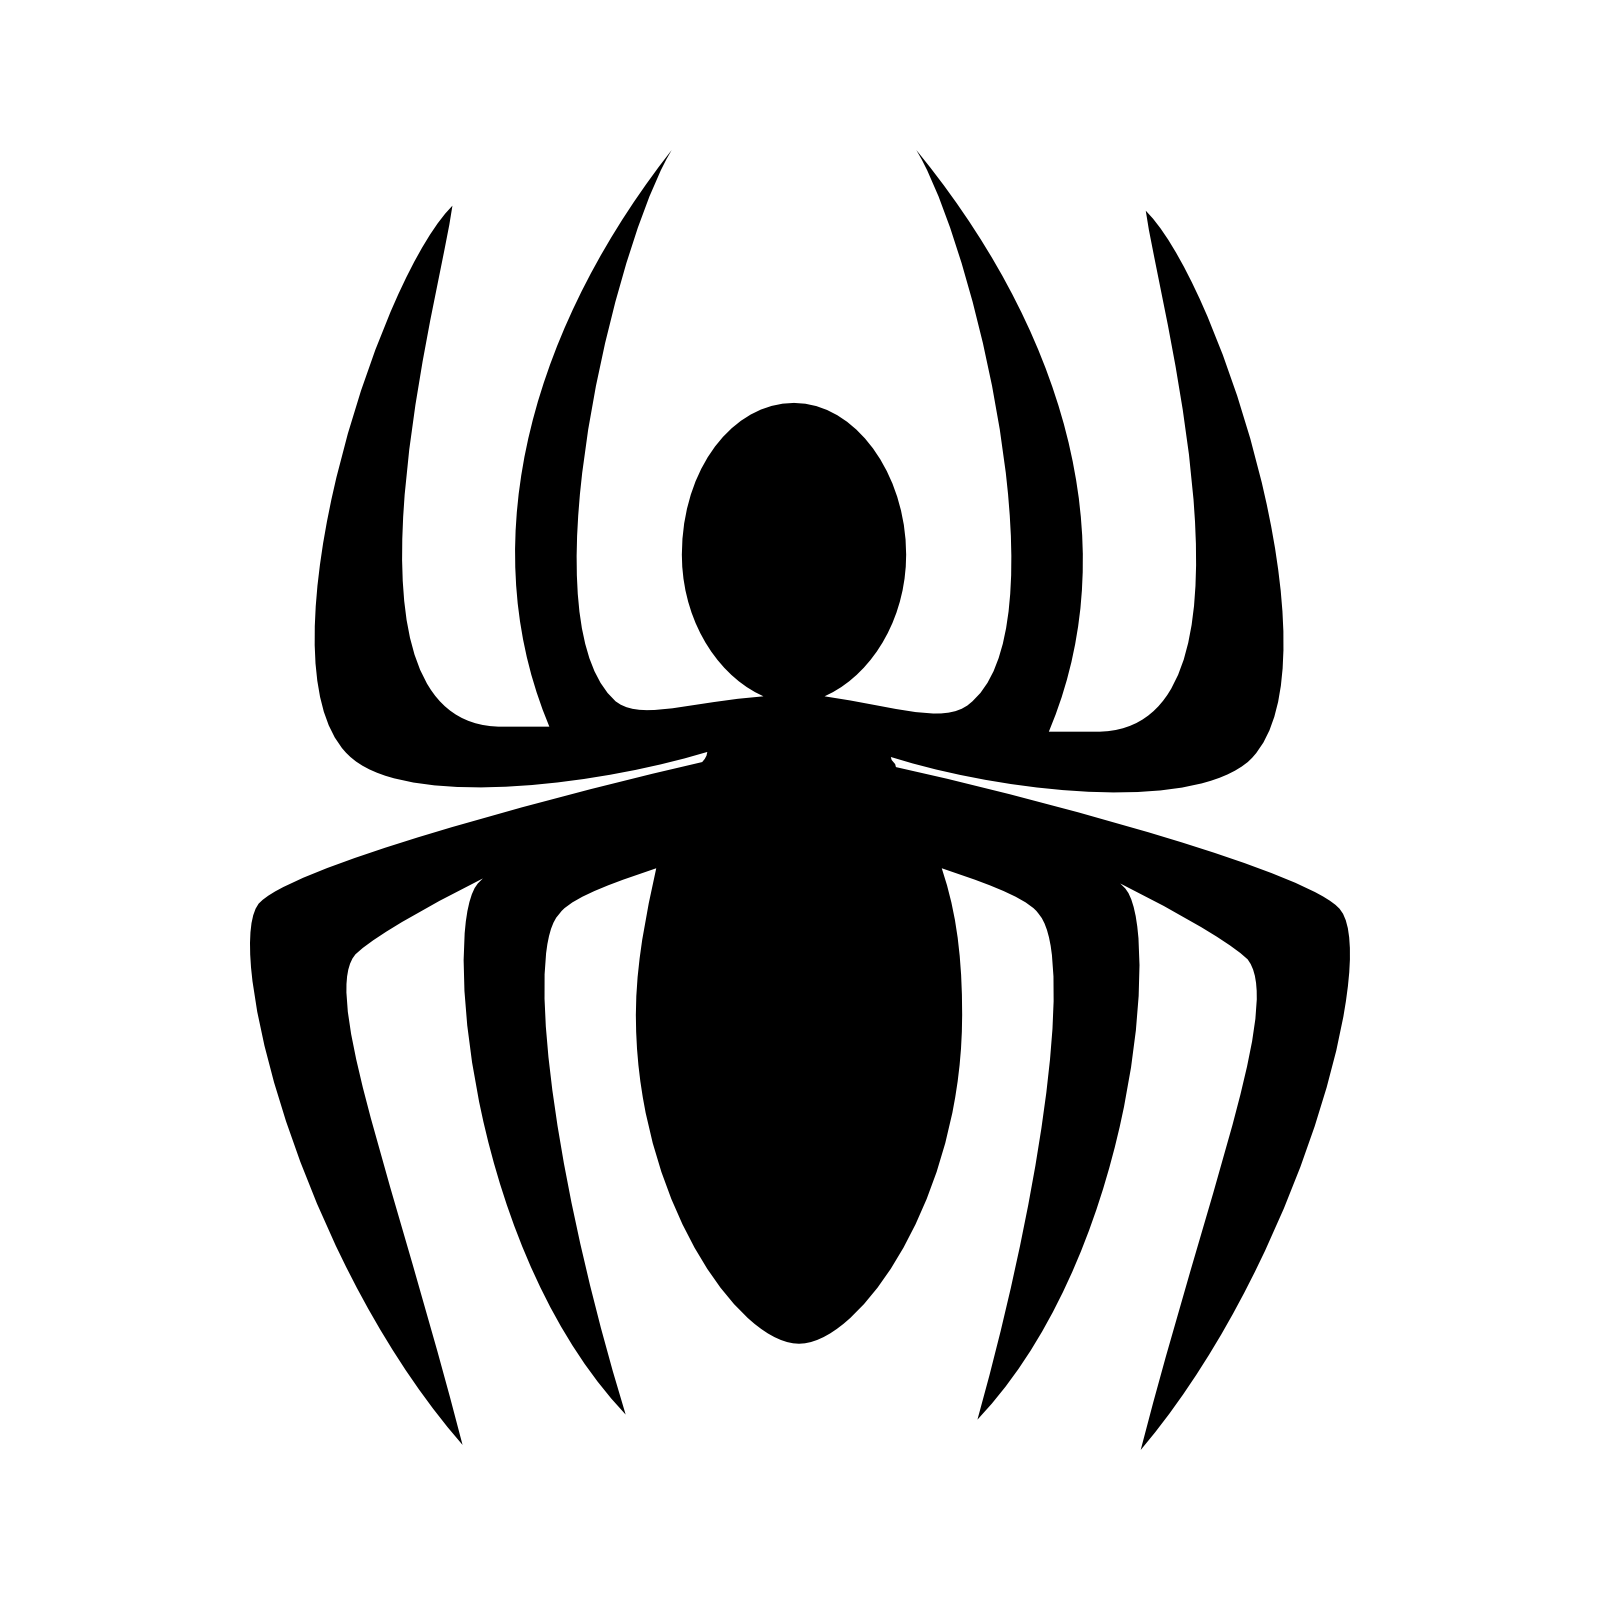 Spider-Man svg #3, Download drawings